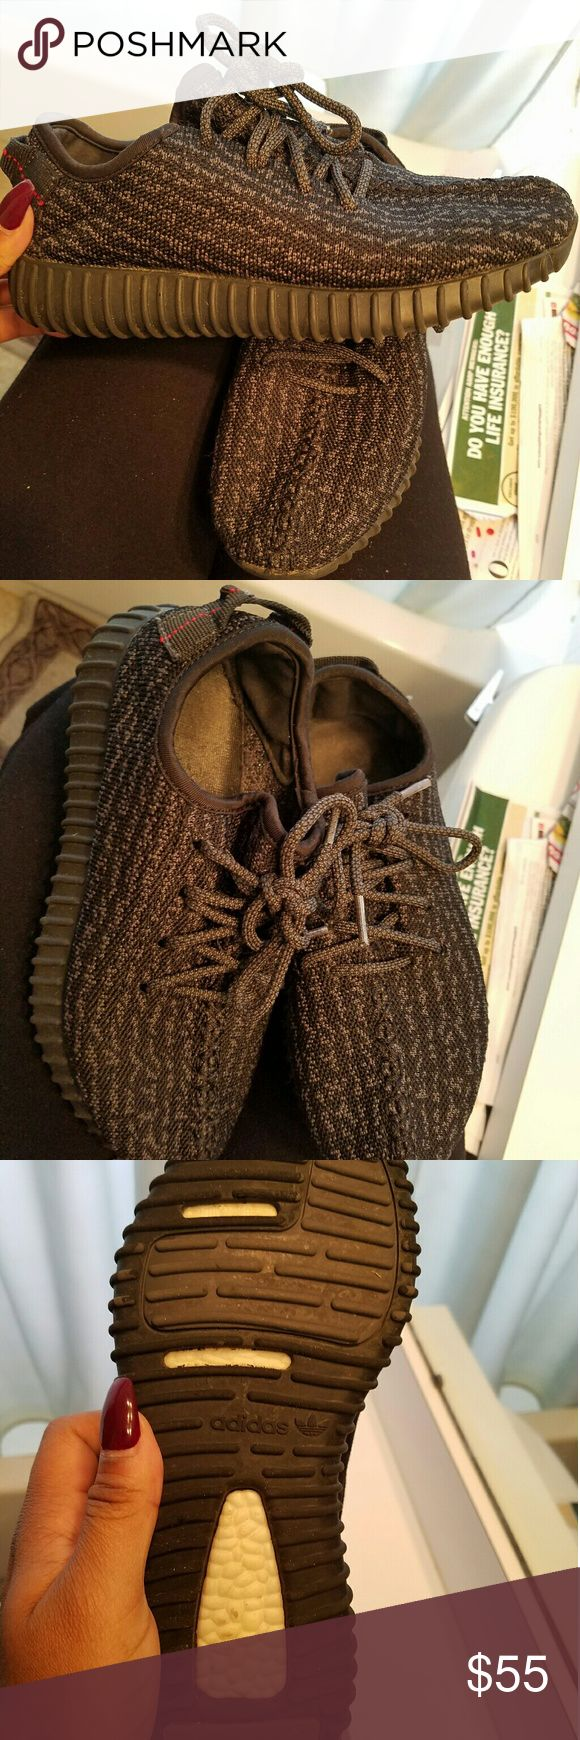 Yeezy boost shoes Normal use and wear, in great shape not associated with any brand Yeezy Shoes